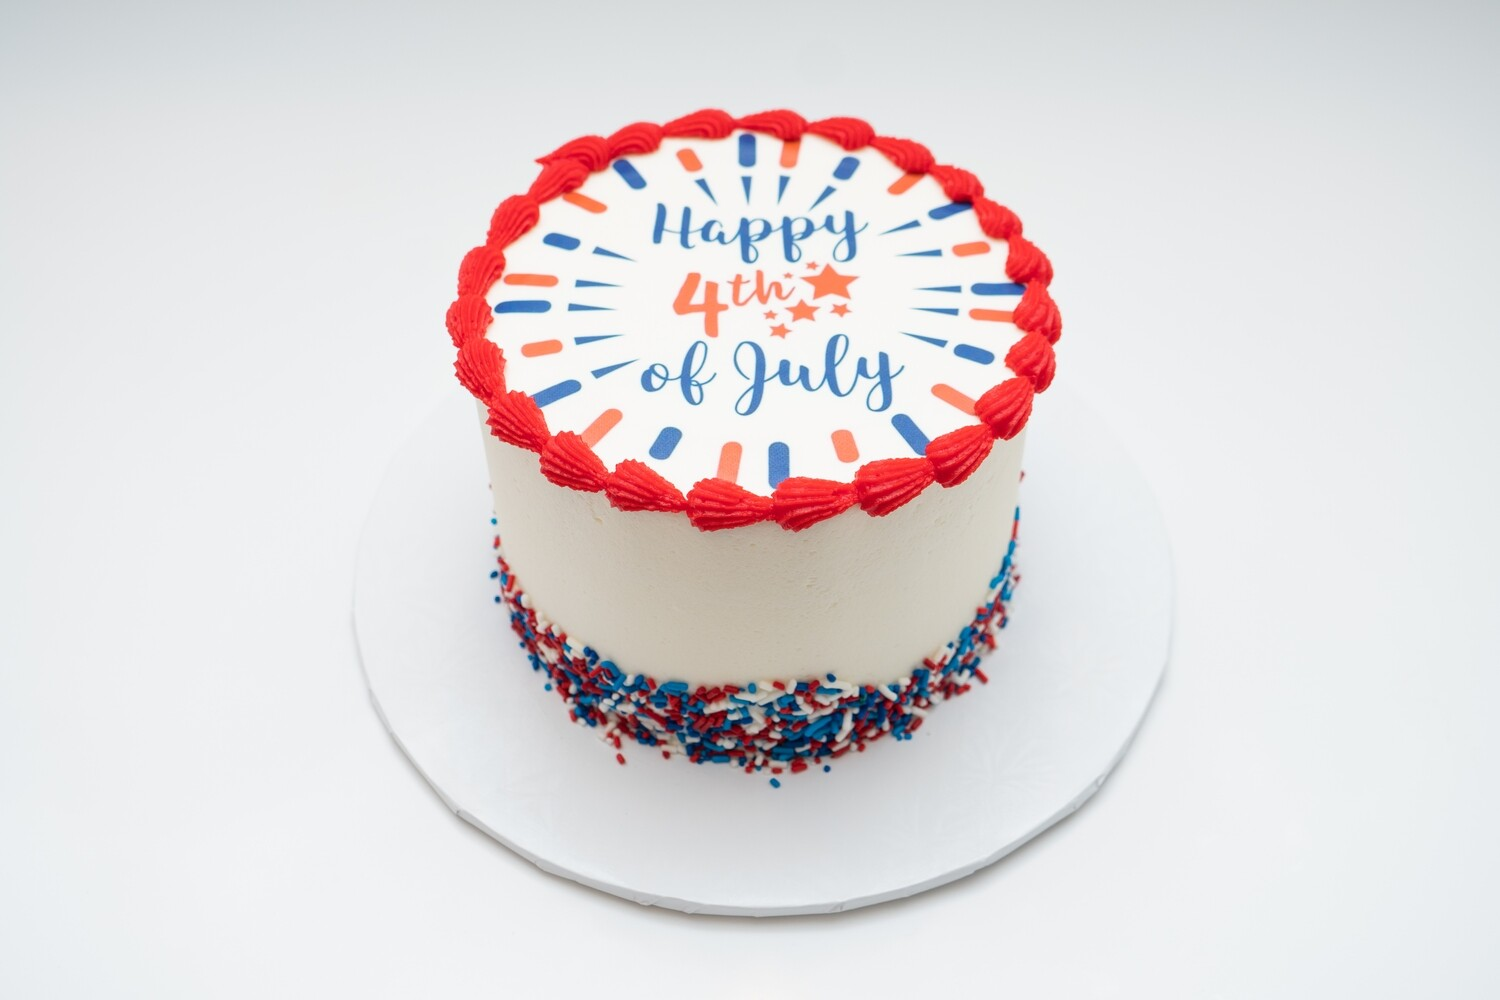 Happy 4th of July Image Cake